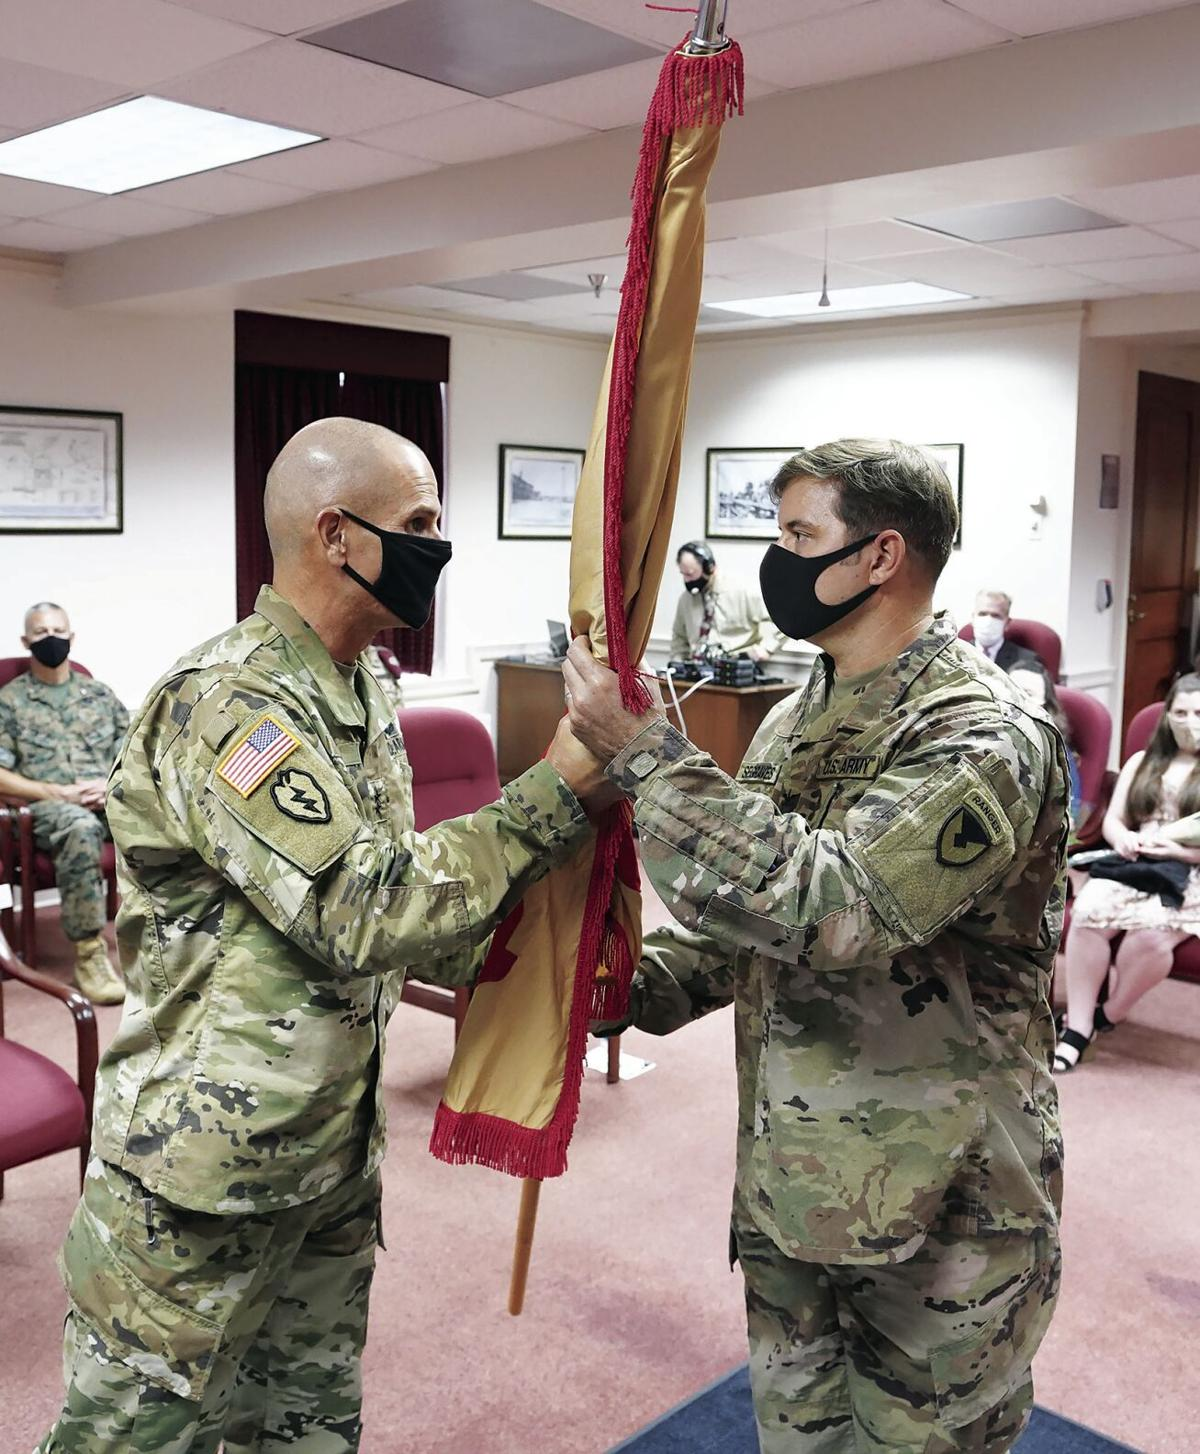 Change of Command Ceremony August 11, 2020